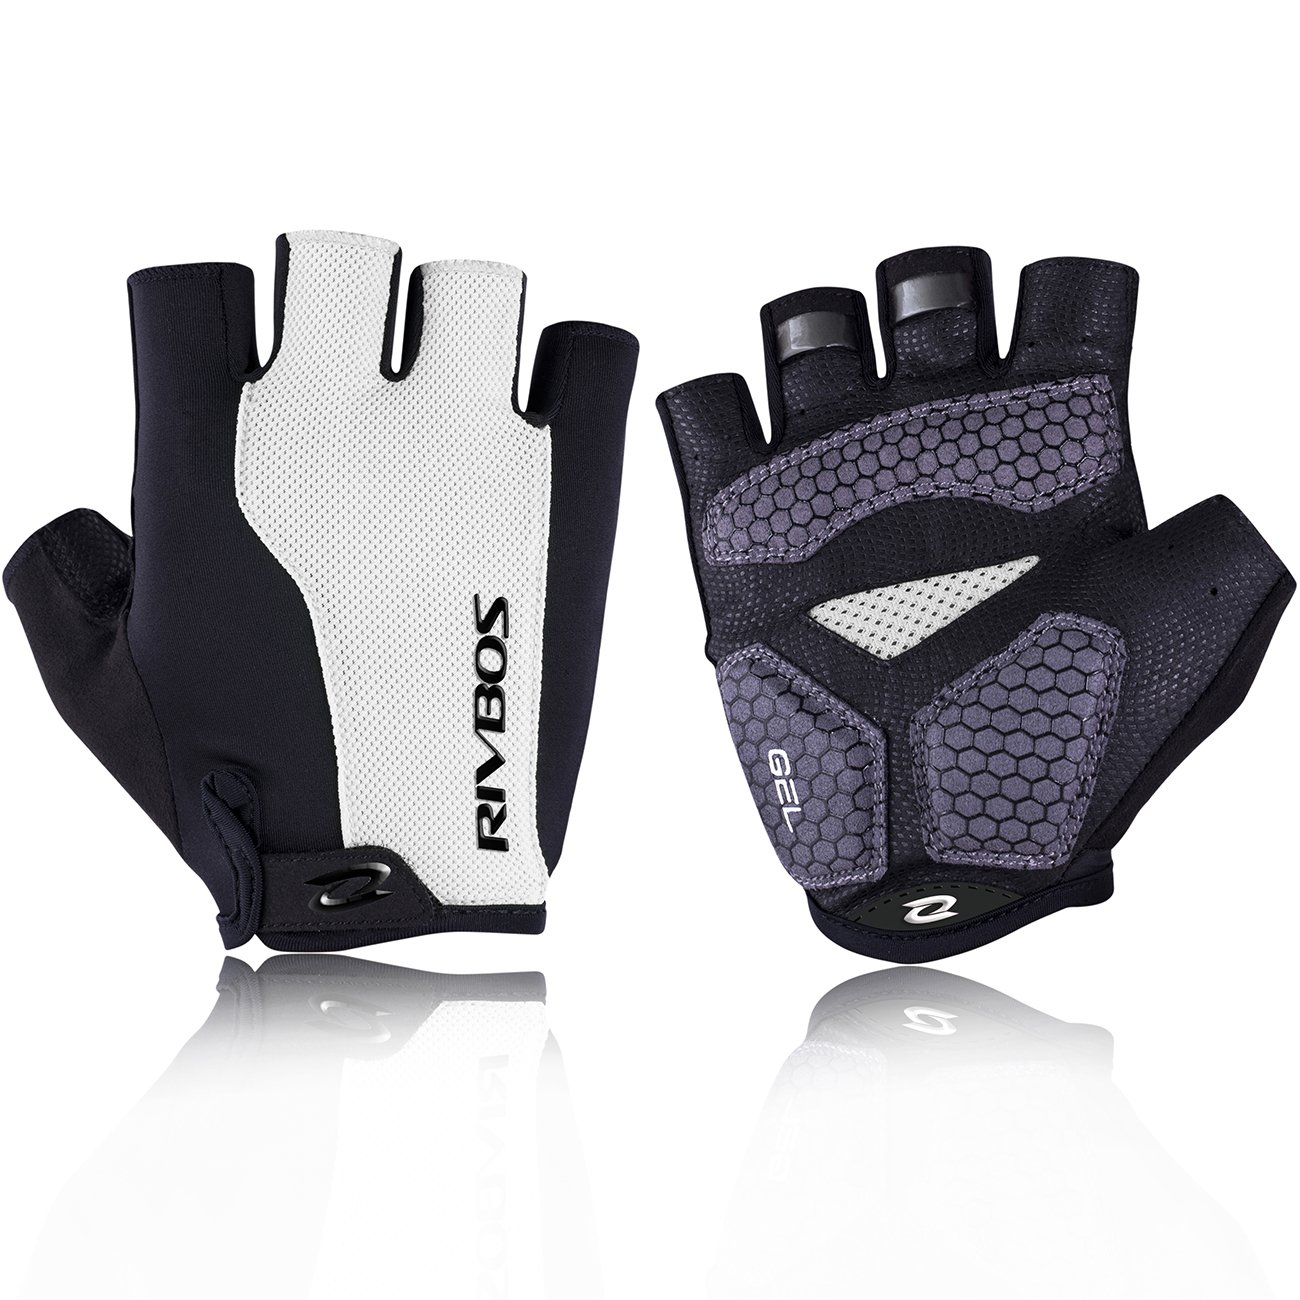 RIVBOS Bike Gloves Cycling Gloves Fingerless for Men Women with Foam Padding Breathable Mesh Fashion Design for Mountain Bicycle Riding Sports Outdoors Exercise CHG002(White L) by RIVBOS